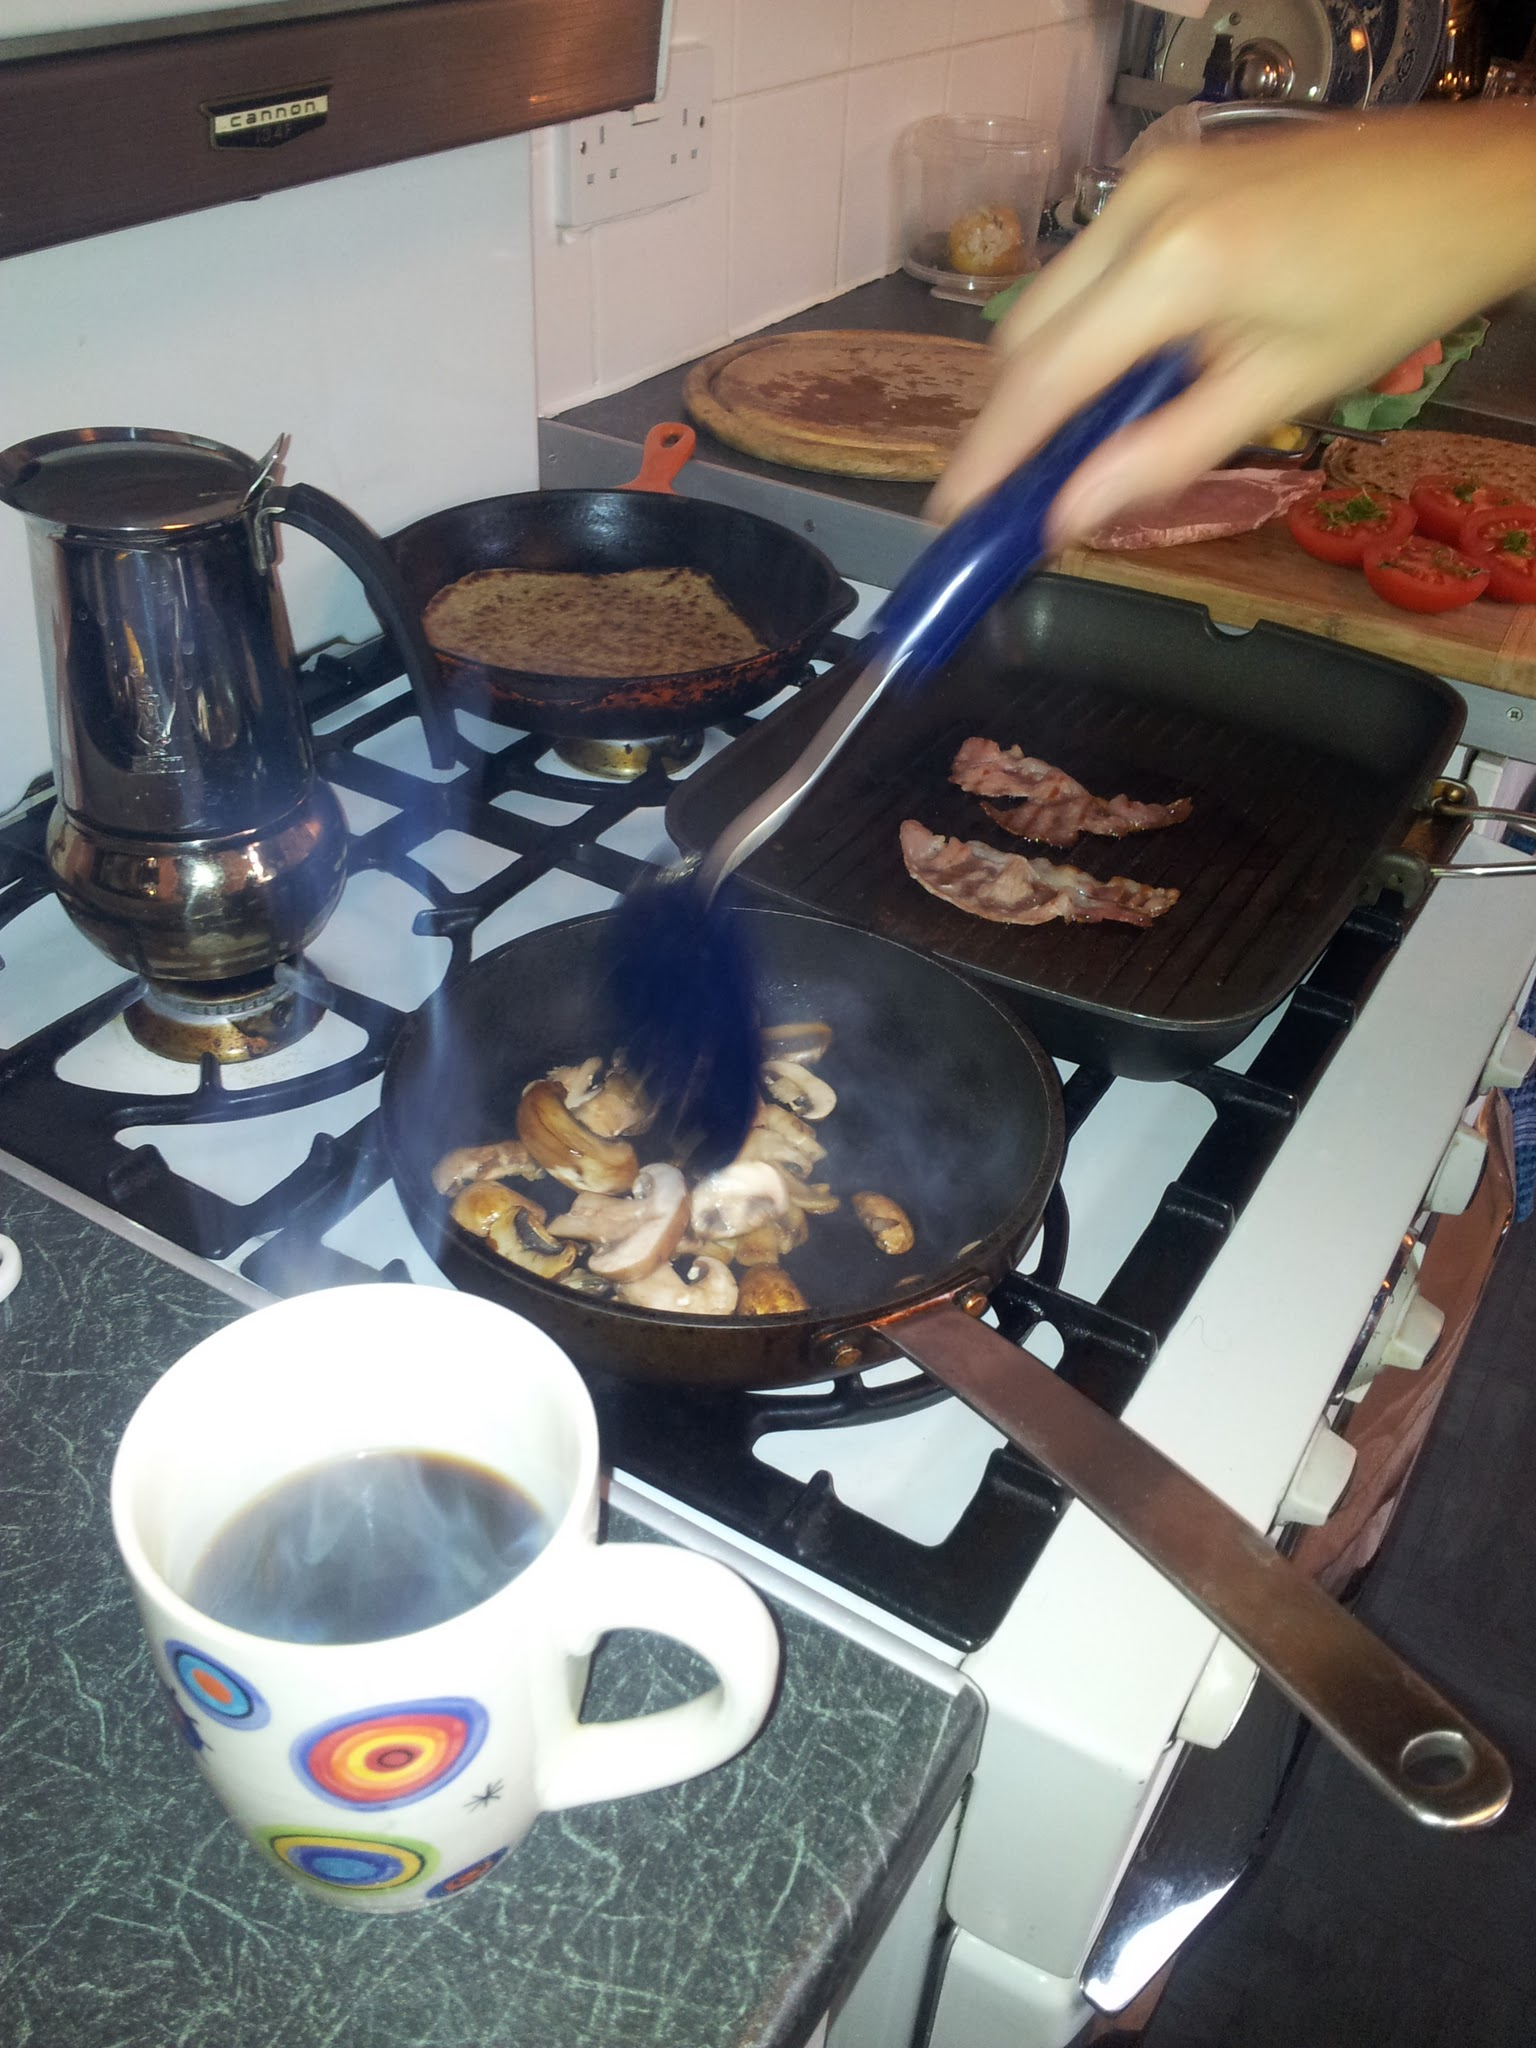 Staffordshire oatcakes - cooking